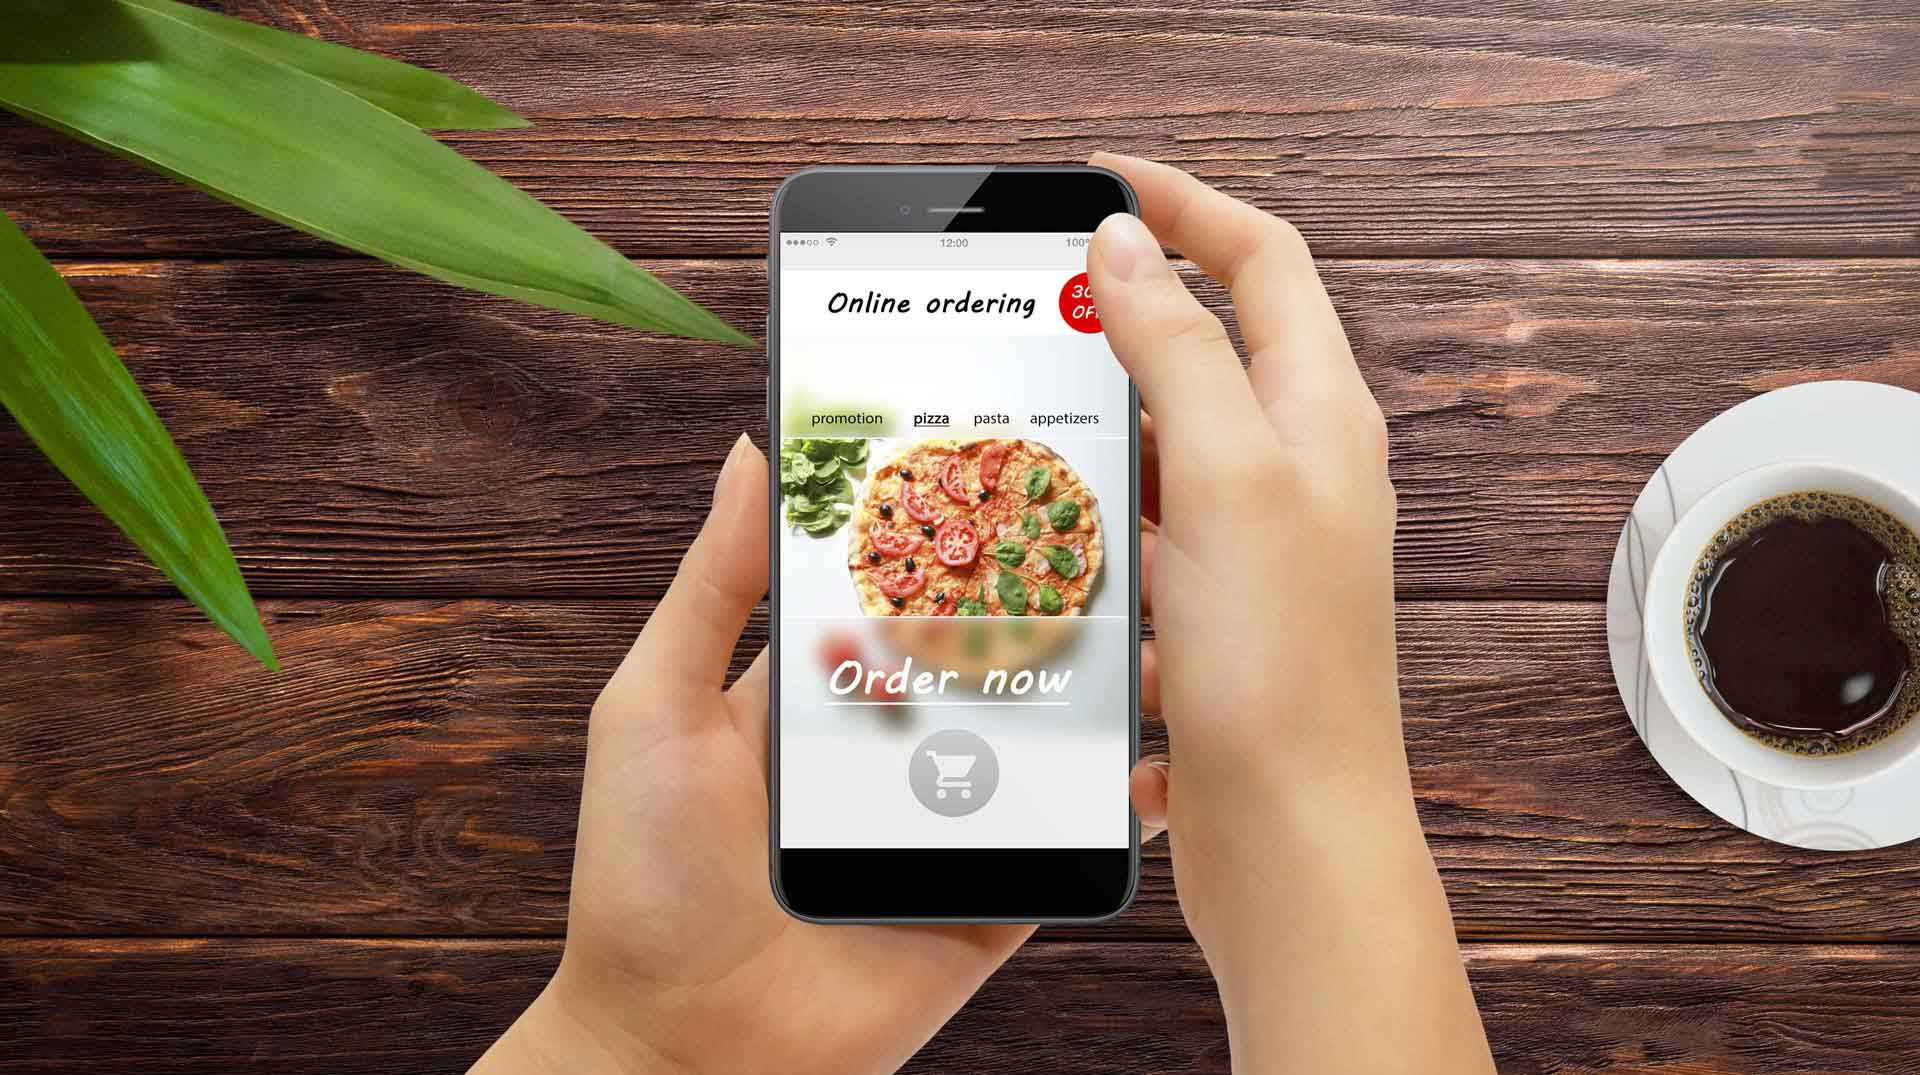 Two hands holding a mobile phone that is displaying a pizza ordering application onscreen